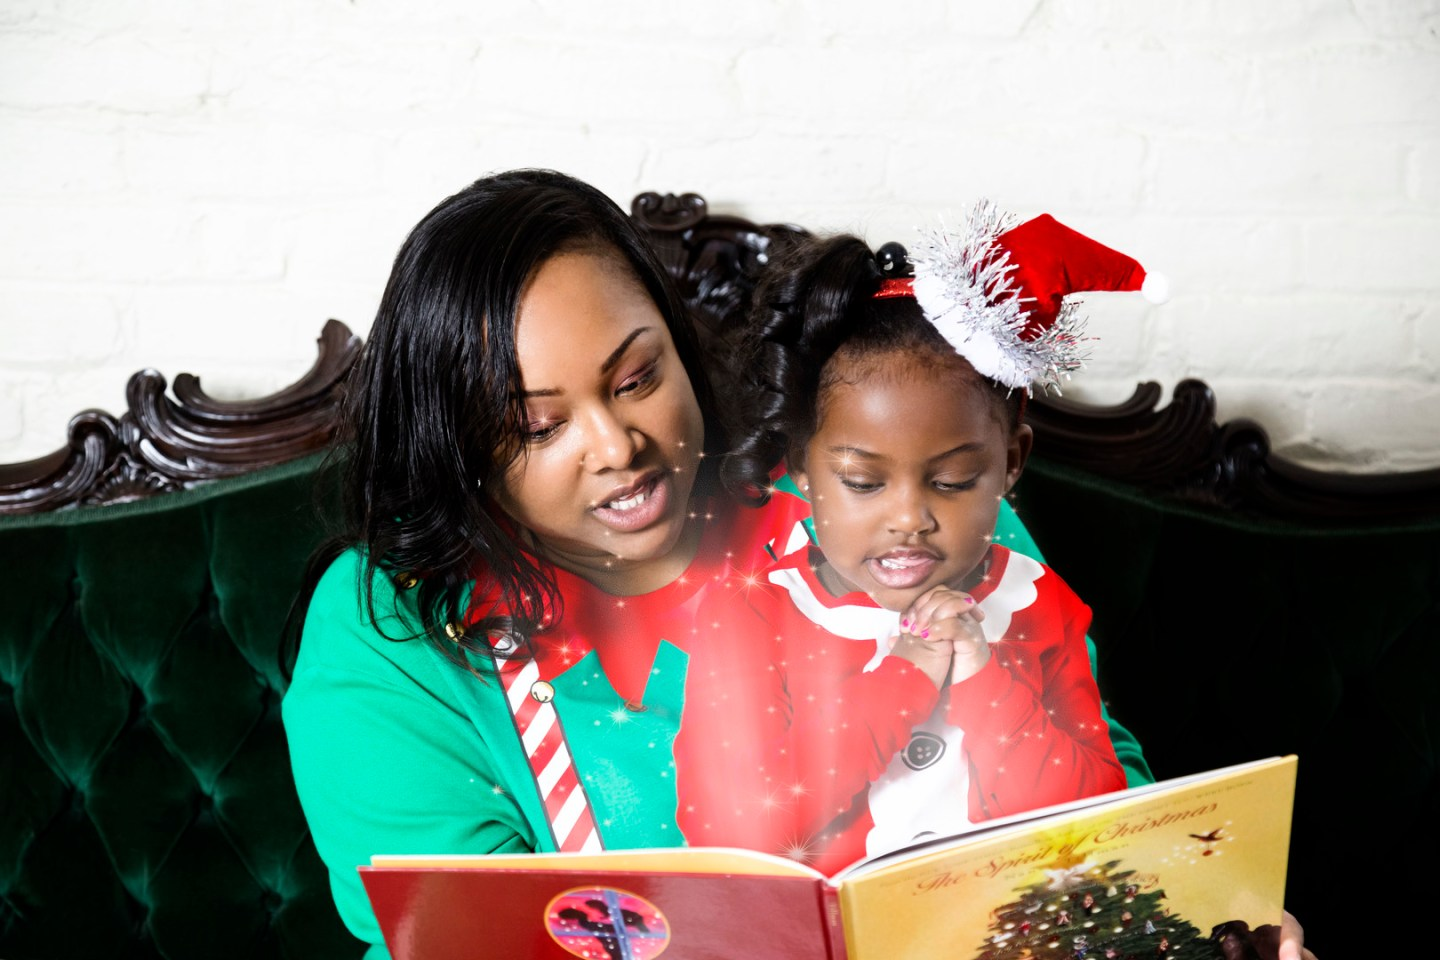 qadg8w3gi0h9n7uei387_big Mommy & Me Christmas PJ Session in Greensboro, NC